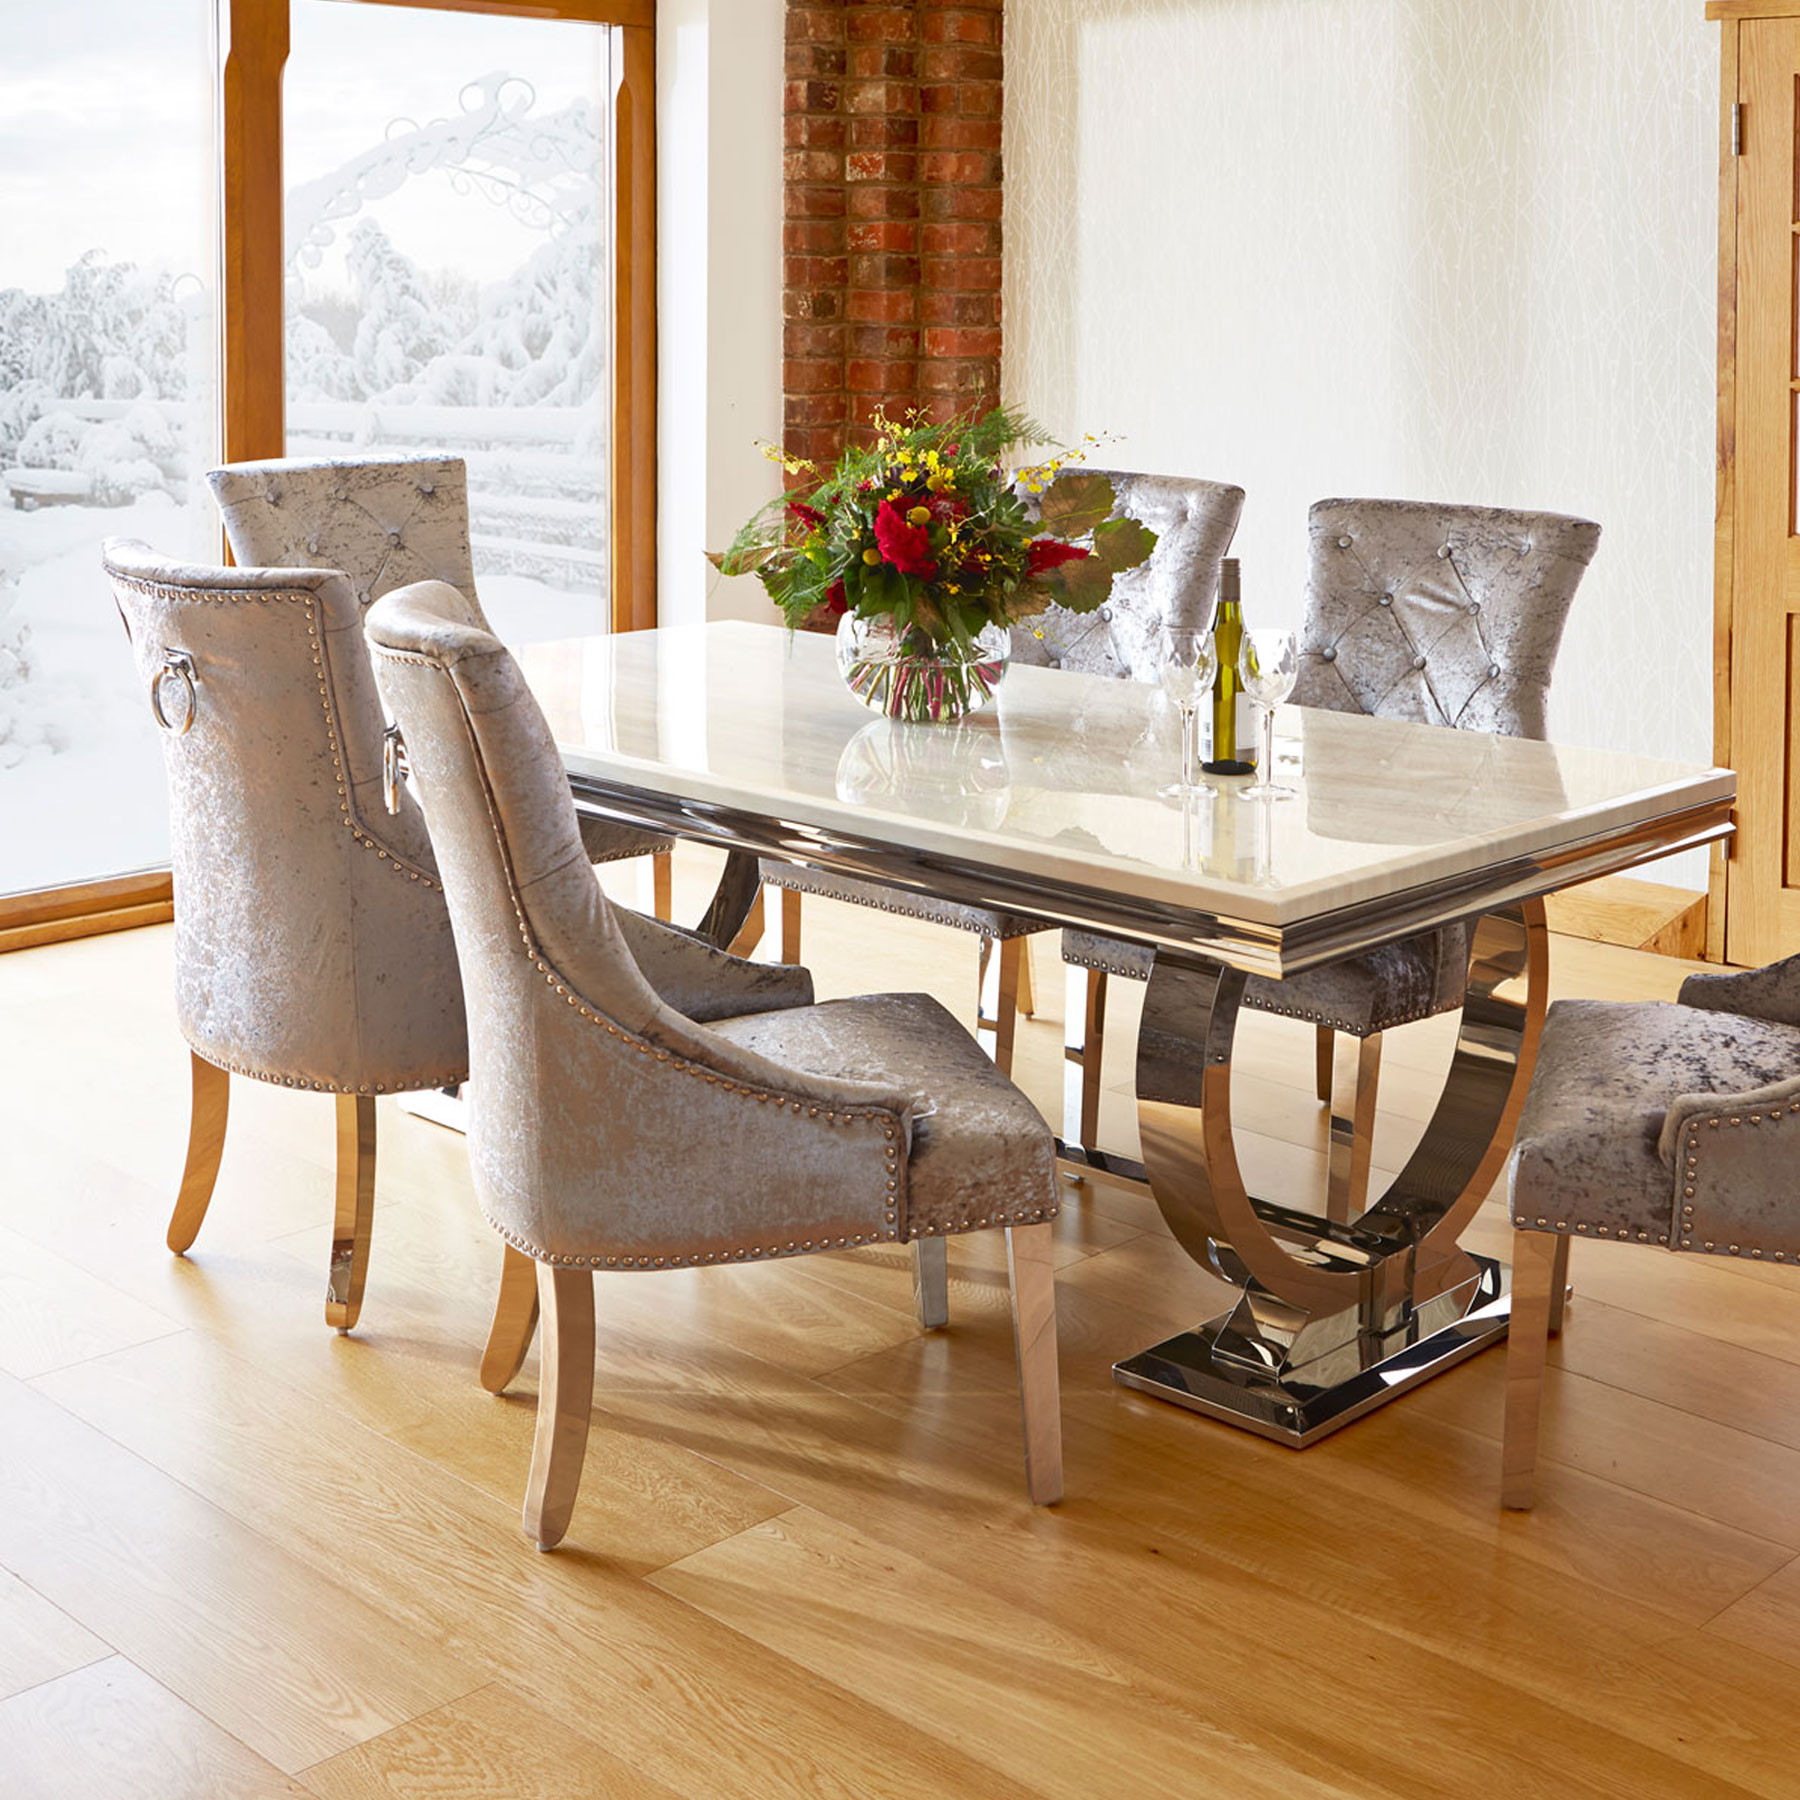 Dining Room Inexpensive Dining Room Table With Bench And: Dining Tables And Chairs